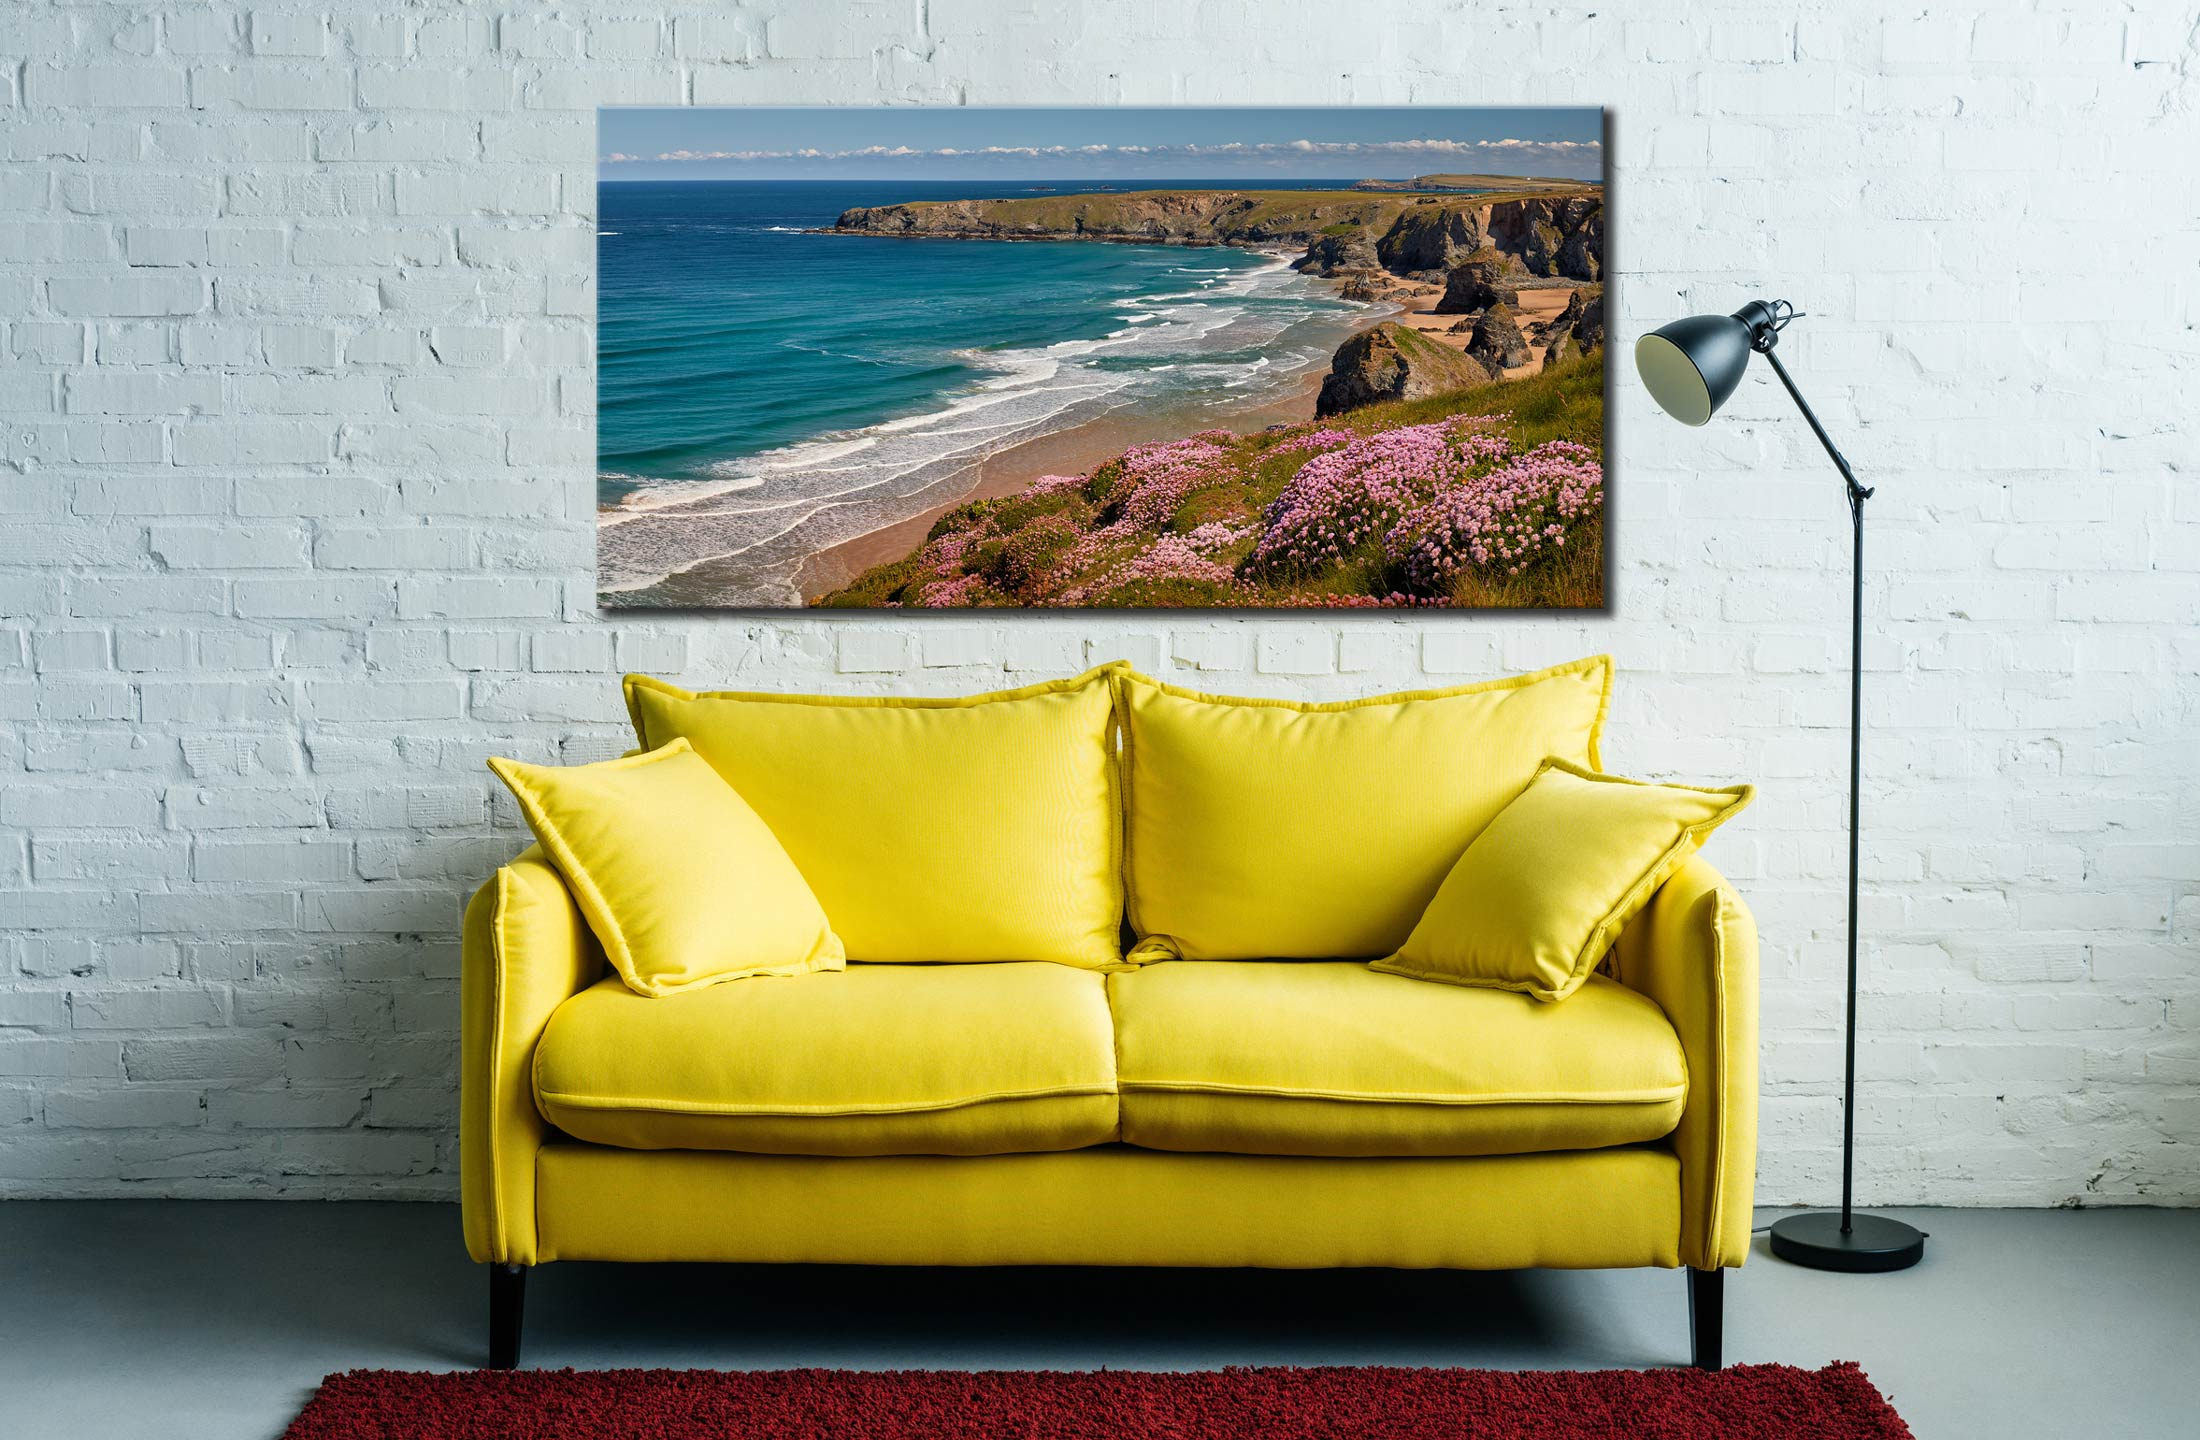 Spring Wildflowers Bedruthan Steps - Canvas Print on Wall